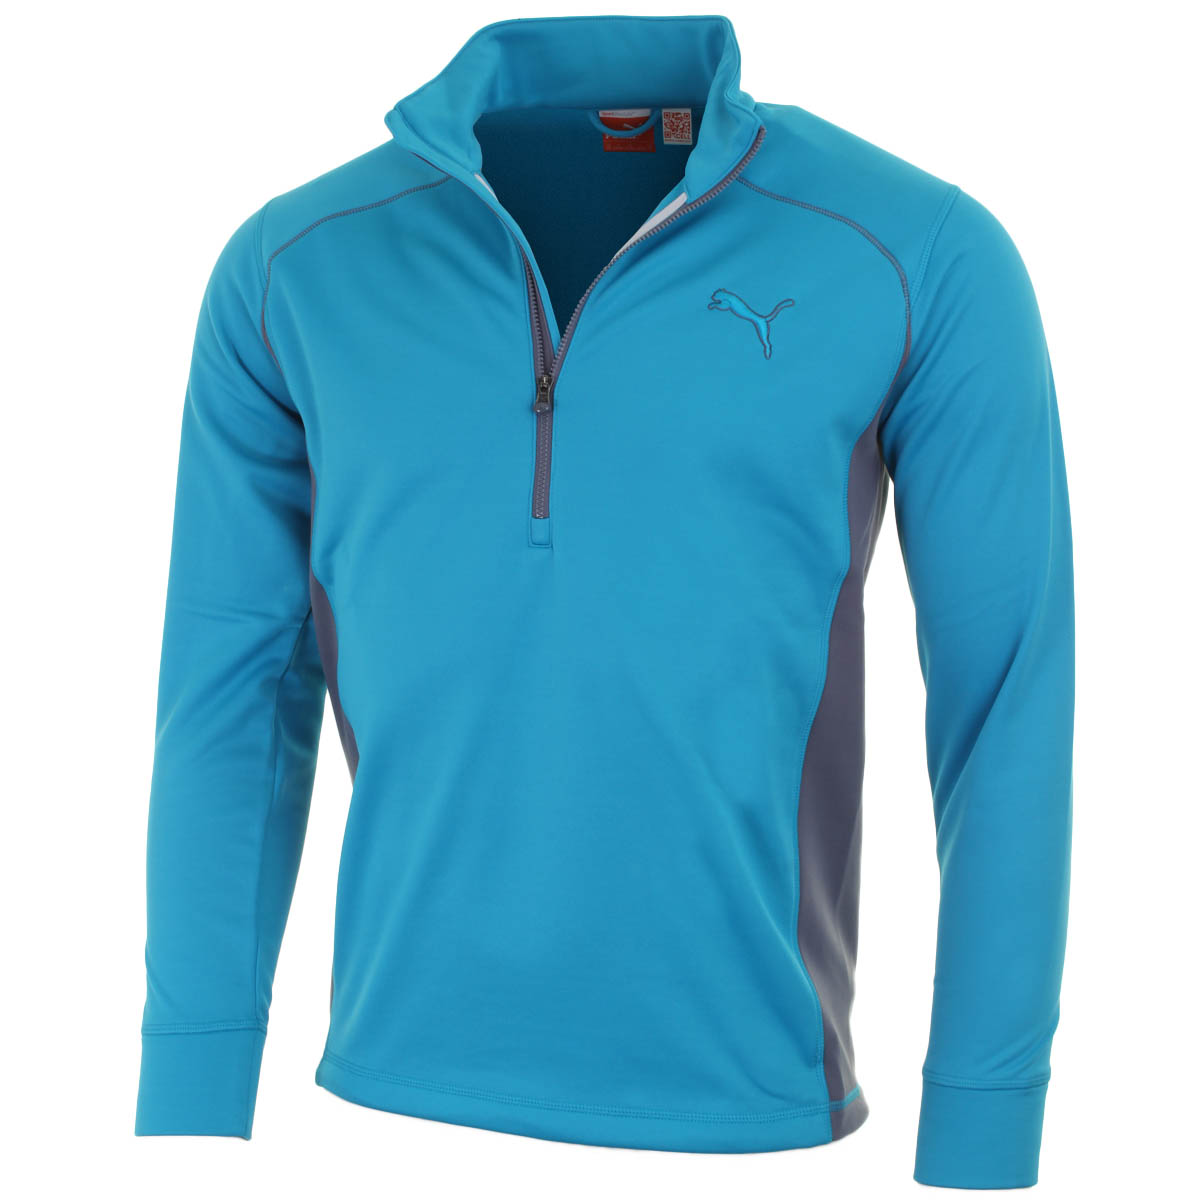 Mens Puma Golf Shirts